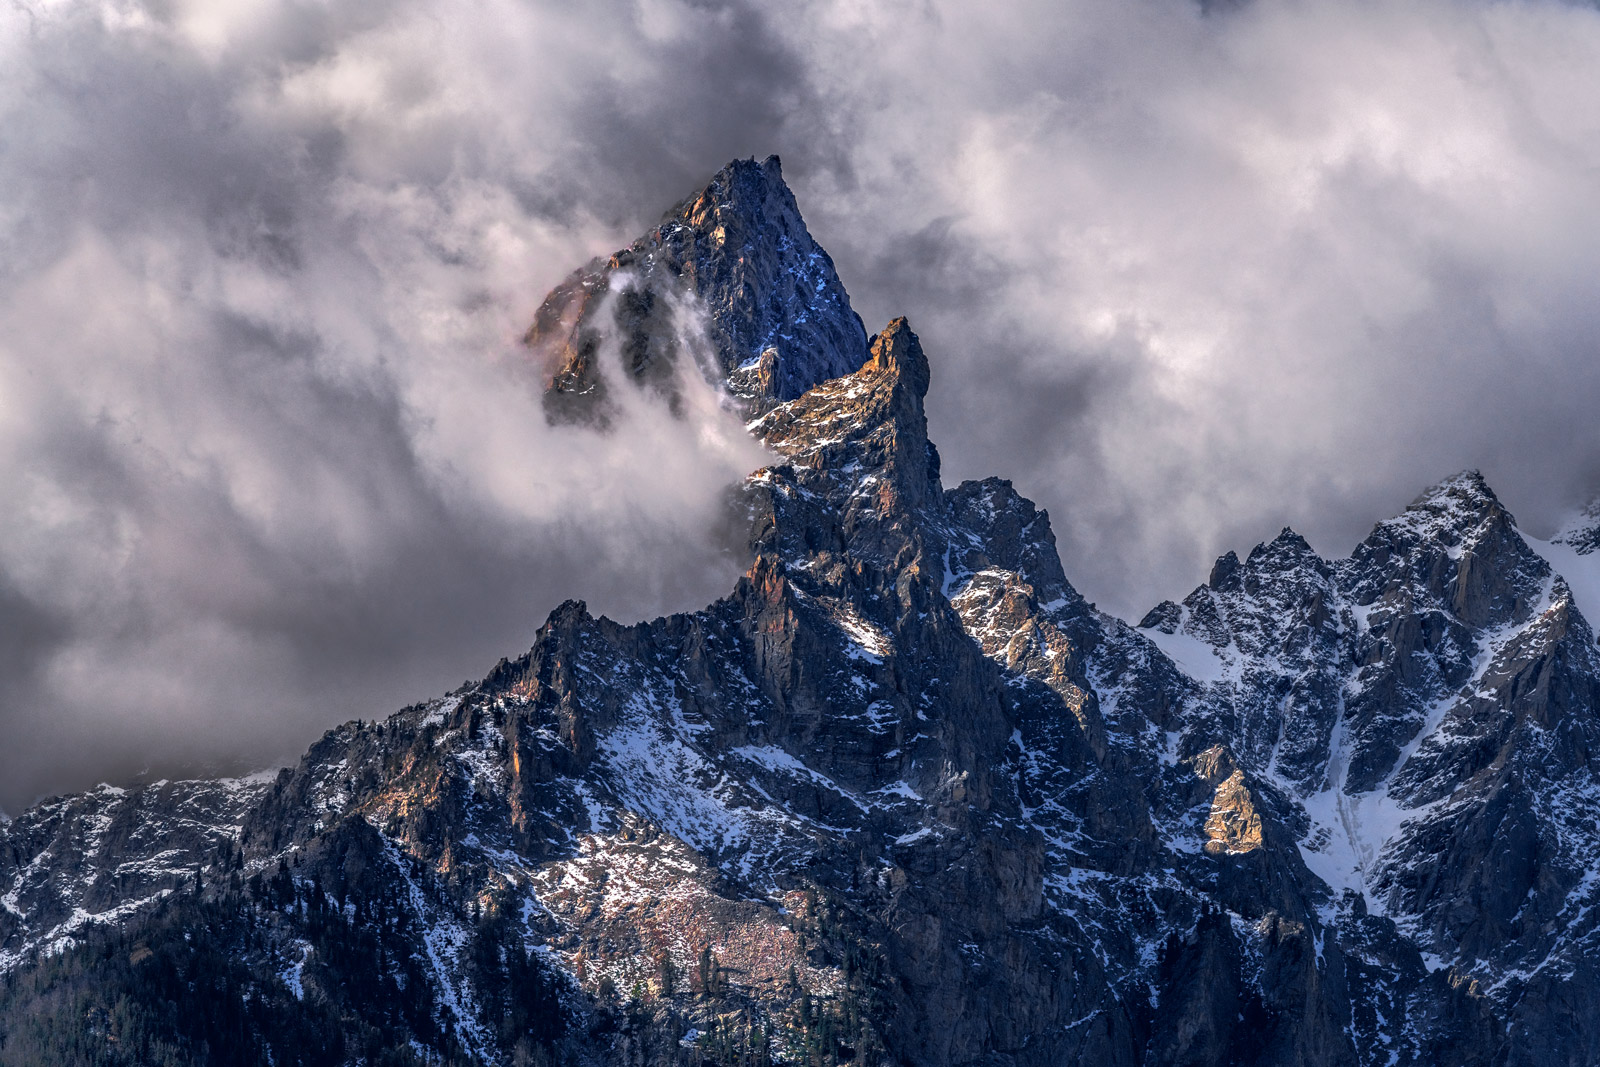 Wyoming, Grand Teton, National Park, Storm, Mountains, limited edition, photograph, fine art, landscape, photo